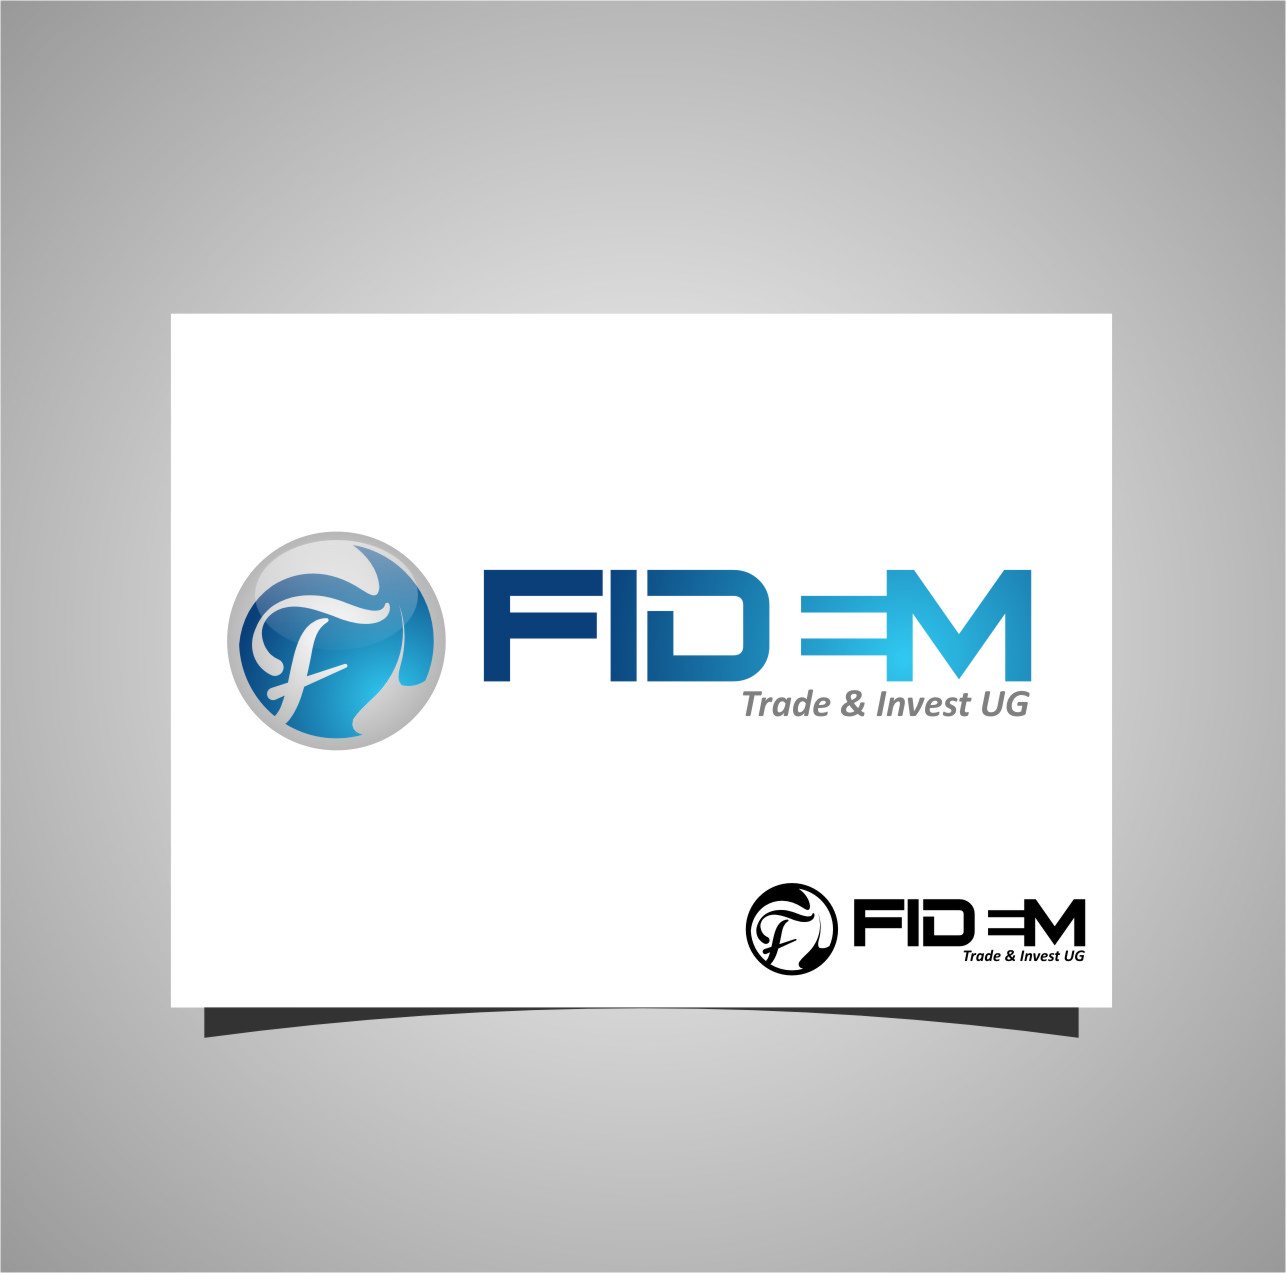 Logo Design by Ngepet_art - Entry No. 499 in the Logo Design Contest Professional Logo Design for FIDEM Trade & Invest UG.